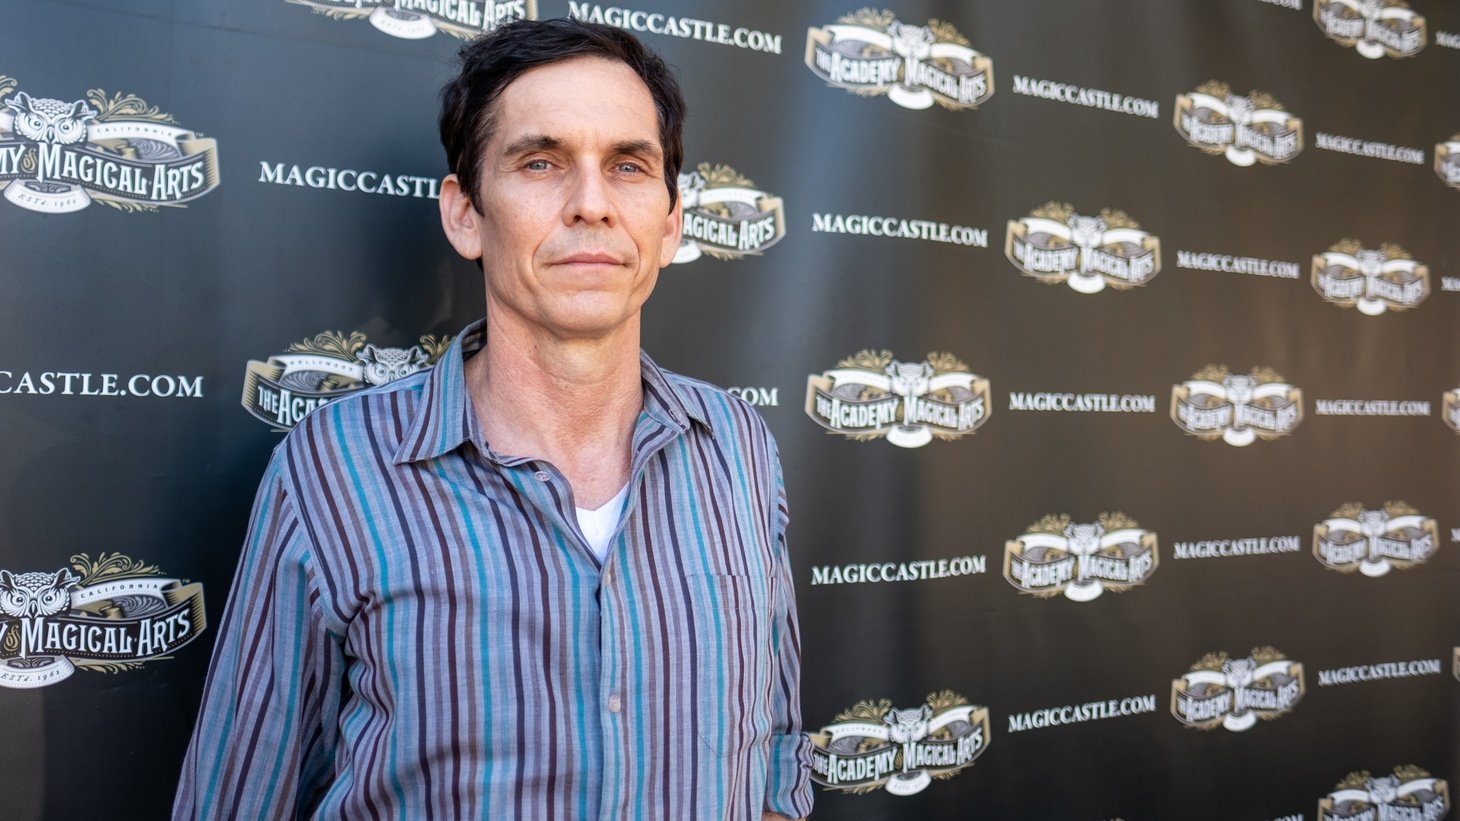 Rob Zabrecky outside the Magic Castle nightclub in Hollywood, August 2019.